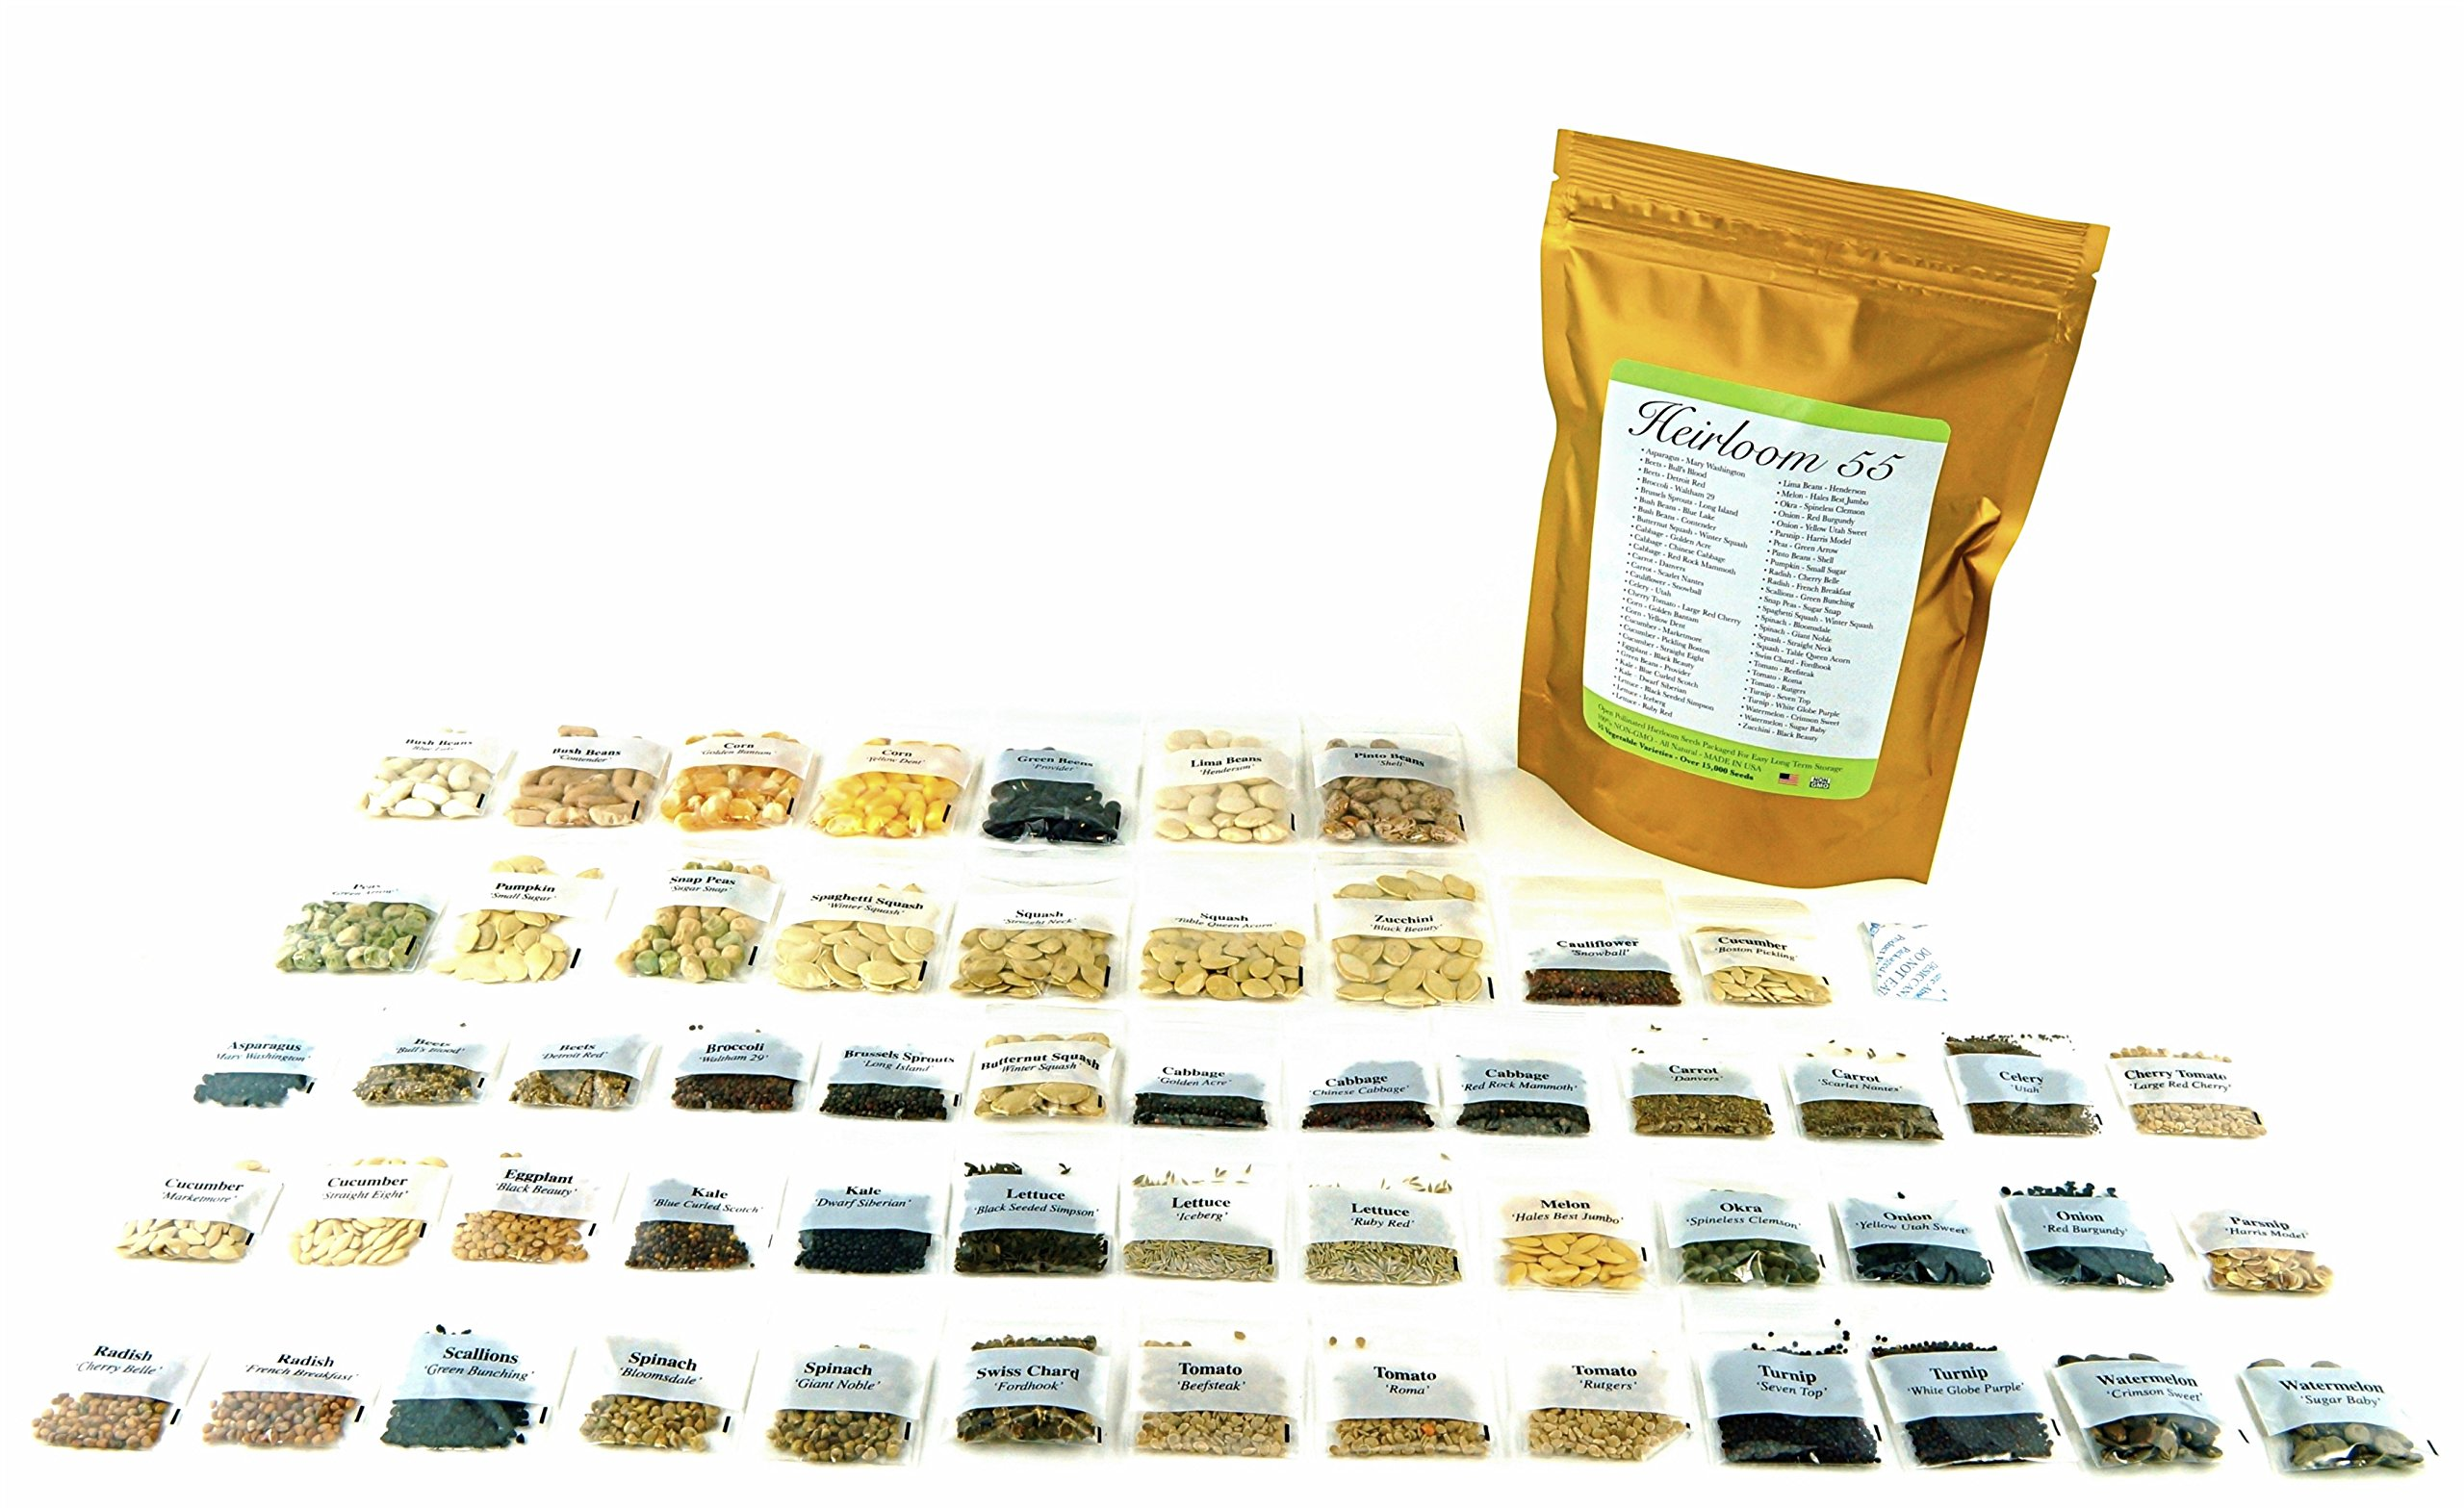 Heirloom Seed Bank with 55 Varieties of Vegetable seeds by Heirloom Futures. 100% NON GMO Open Pollinated Non-Hybrid Naturally Grown Premium USA Seed Stock for All Gardeners. by Heirloom Futures (Image #3)